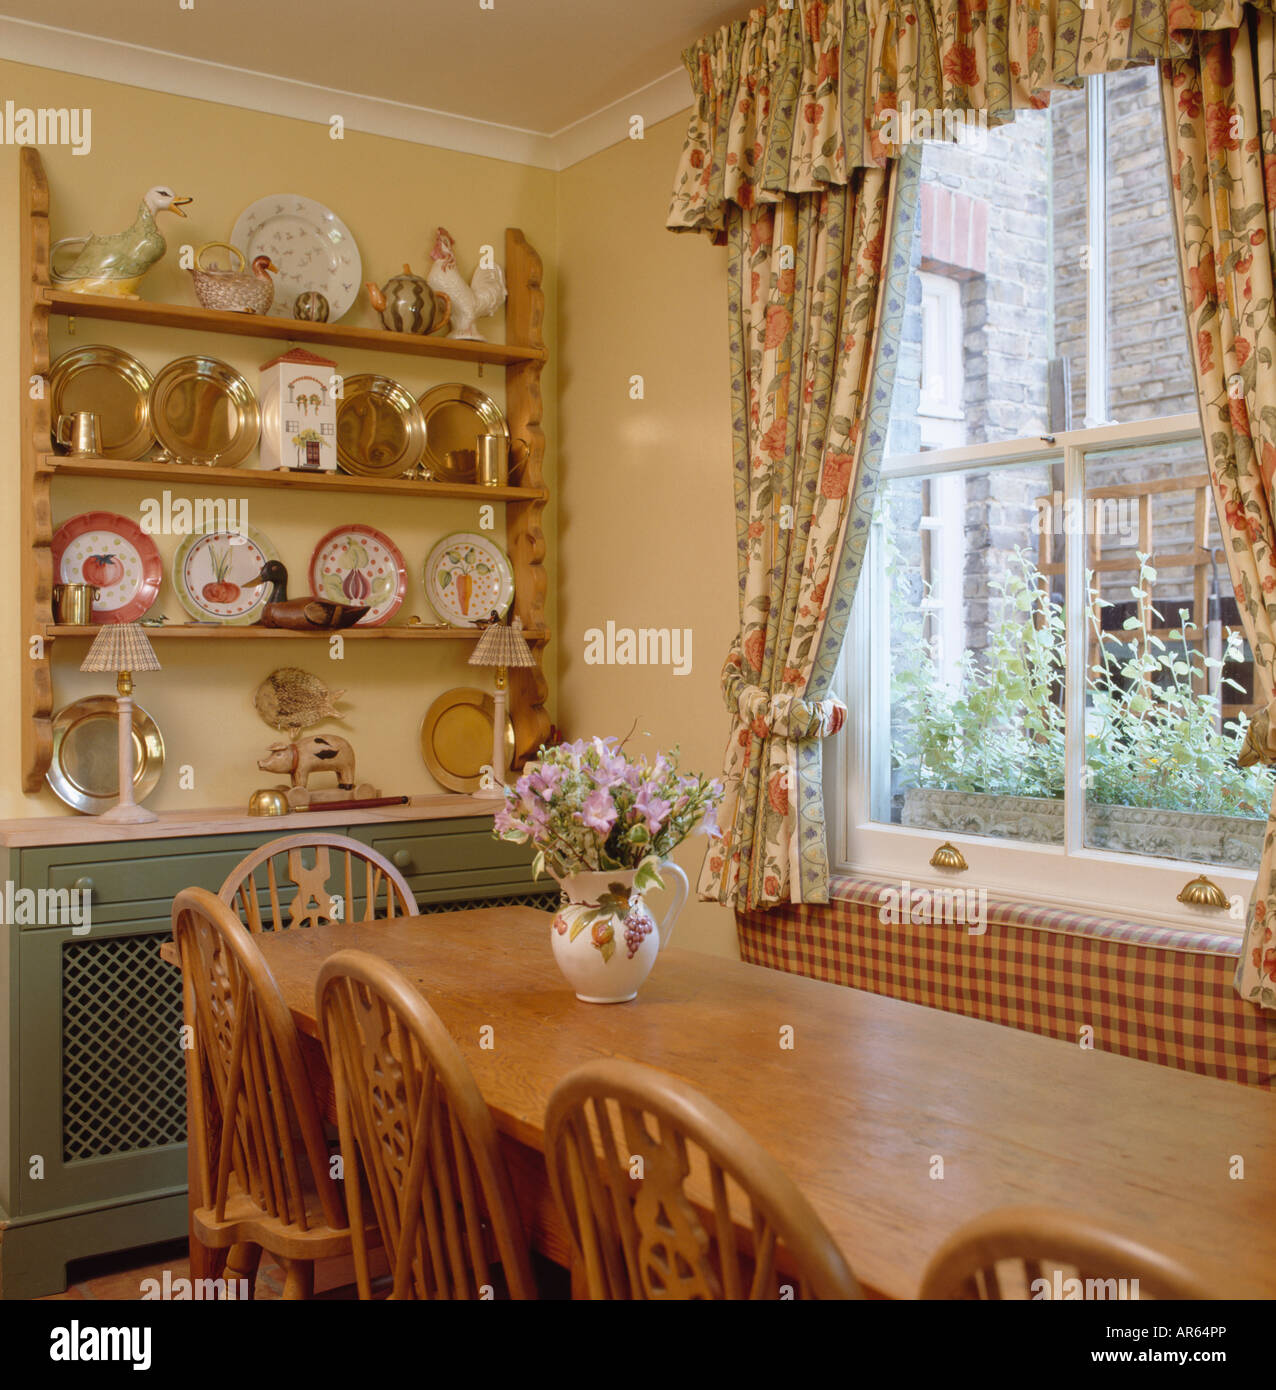 Pine Table And Plates On Pine Shelves In Dining Room With